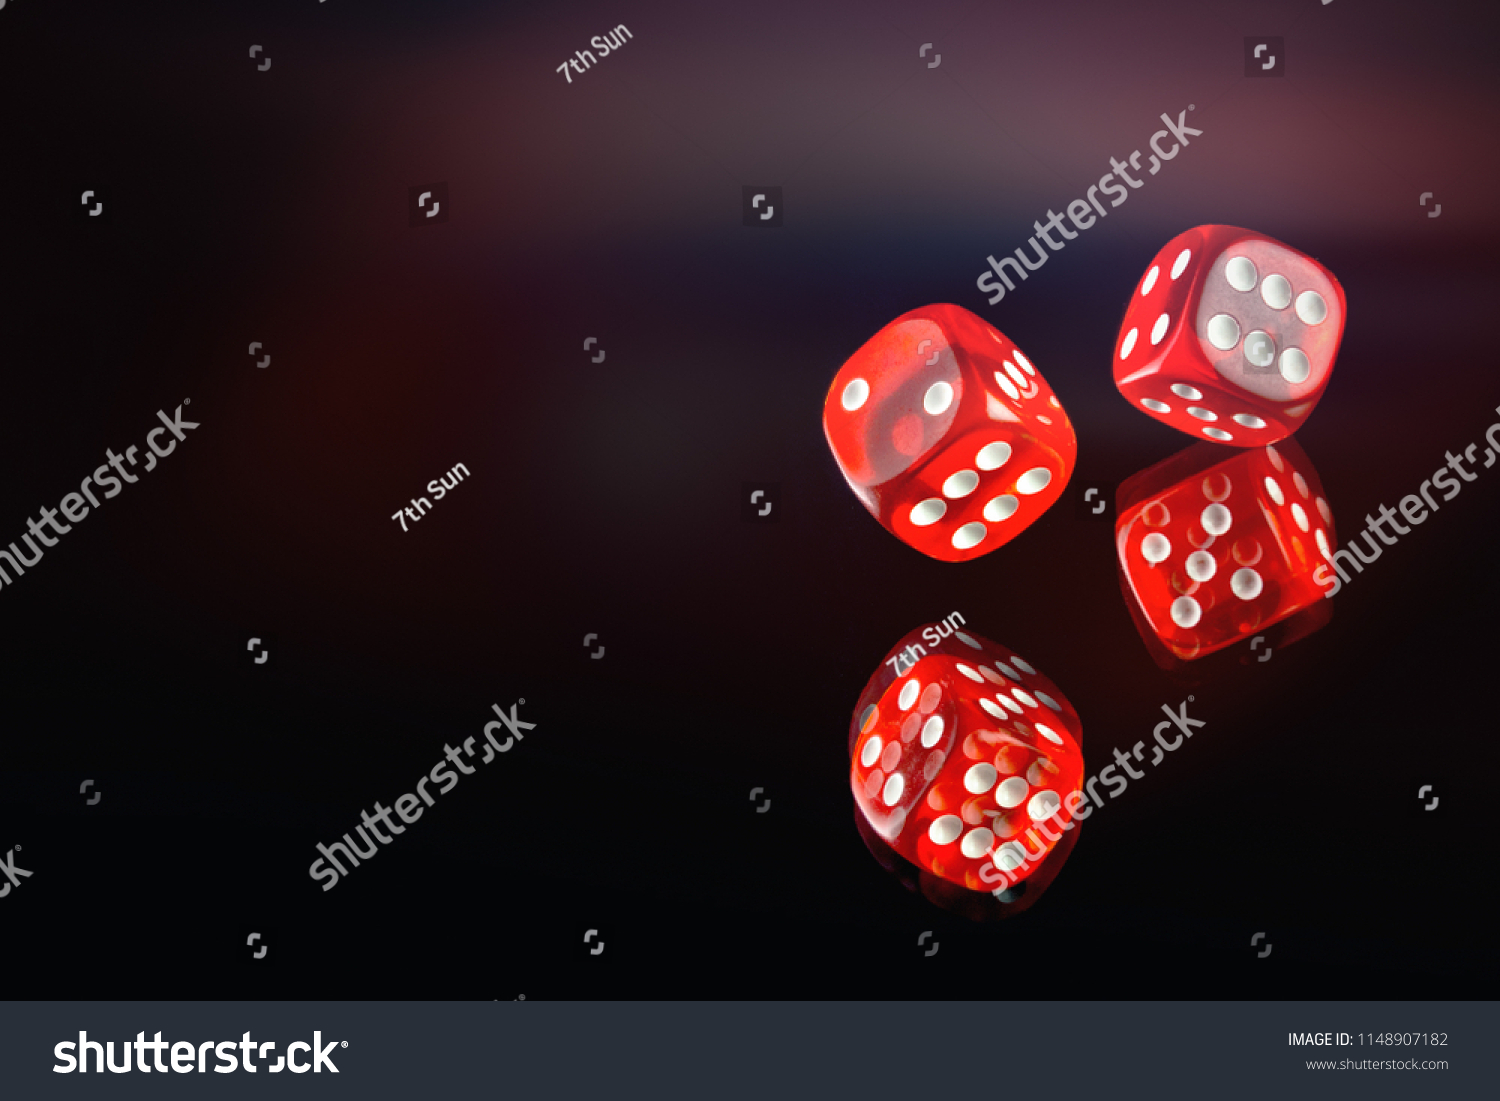 The dice fall on a dark red background. Soft tinted image. Casino gambling poker, roulette. #1148907182